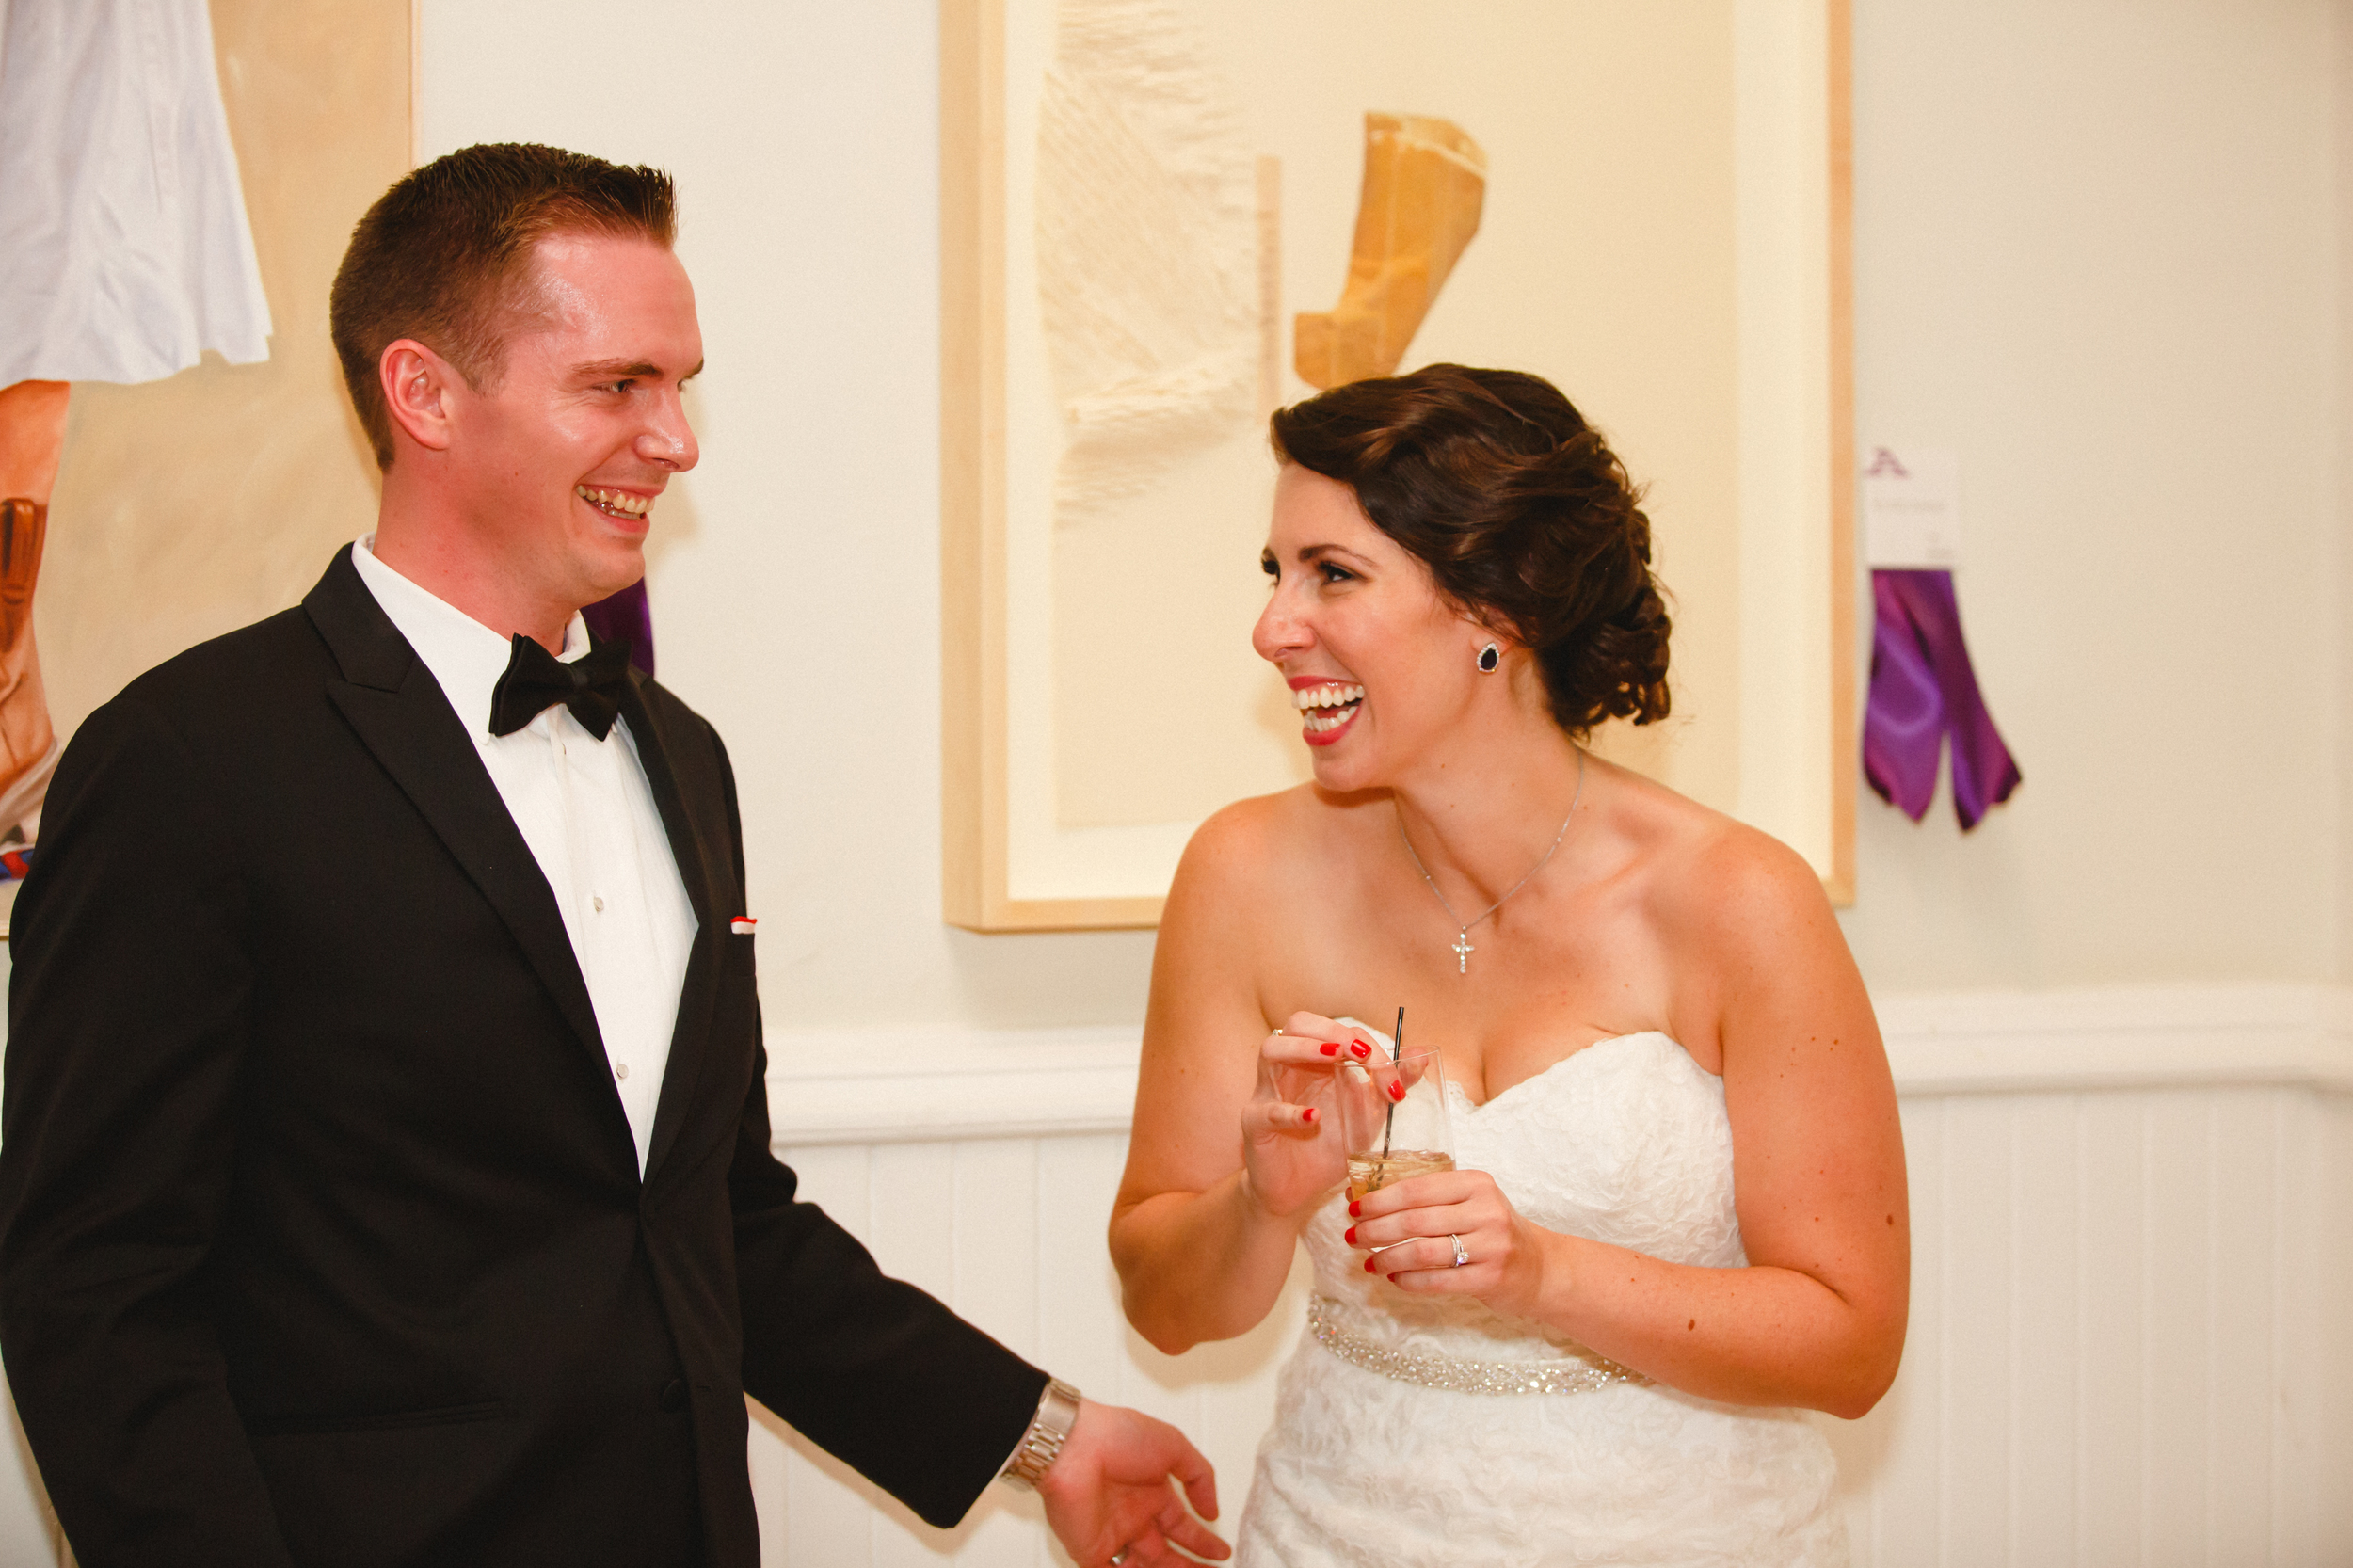 Vness_Photography_Wedding_Photographer_Washington-DC_Fish_Wedding-929.jpg